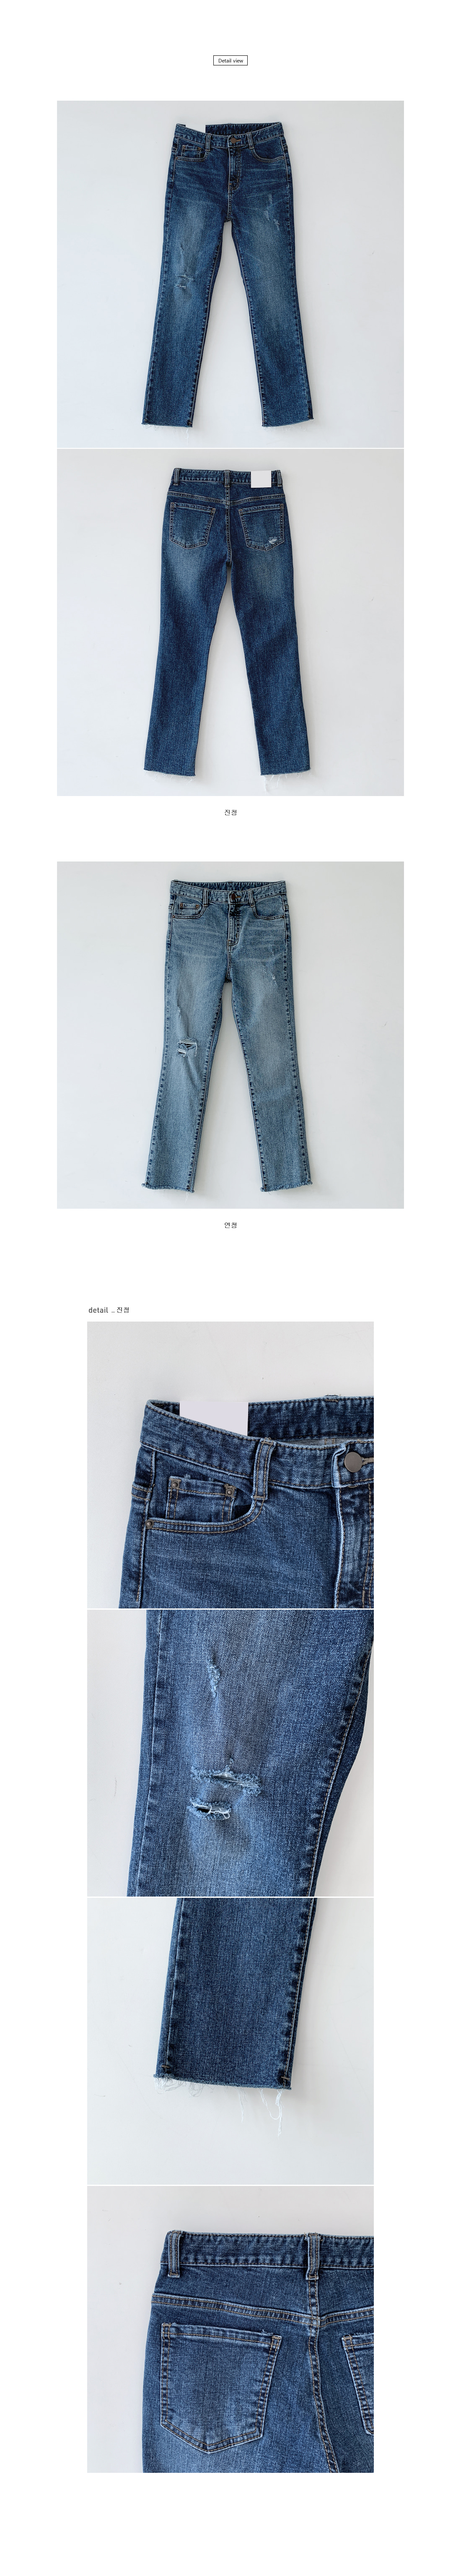 North slim denim pants